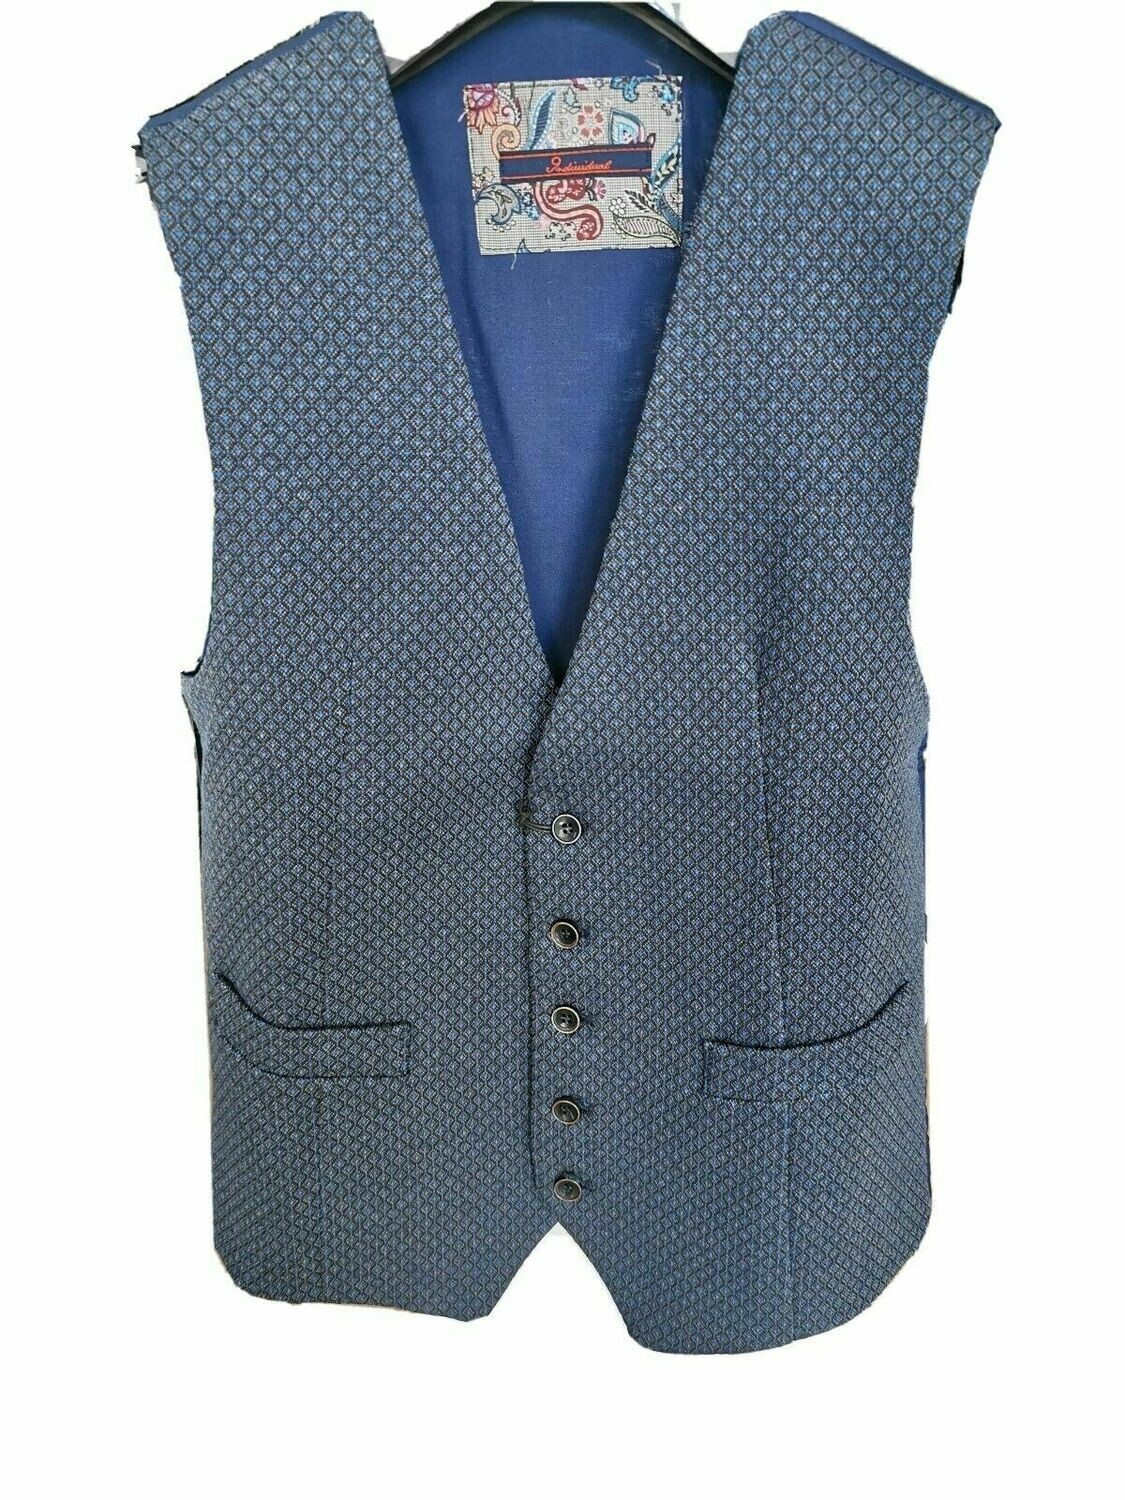 Gilet in tweed